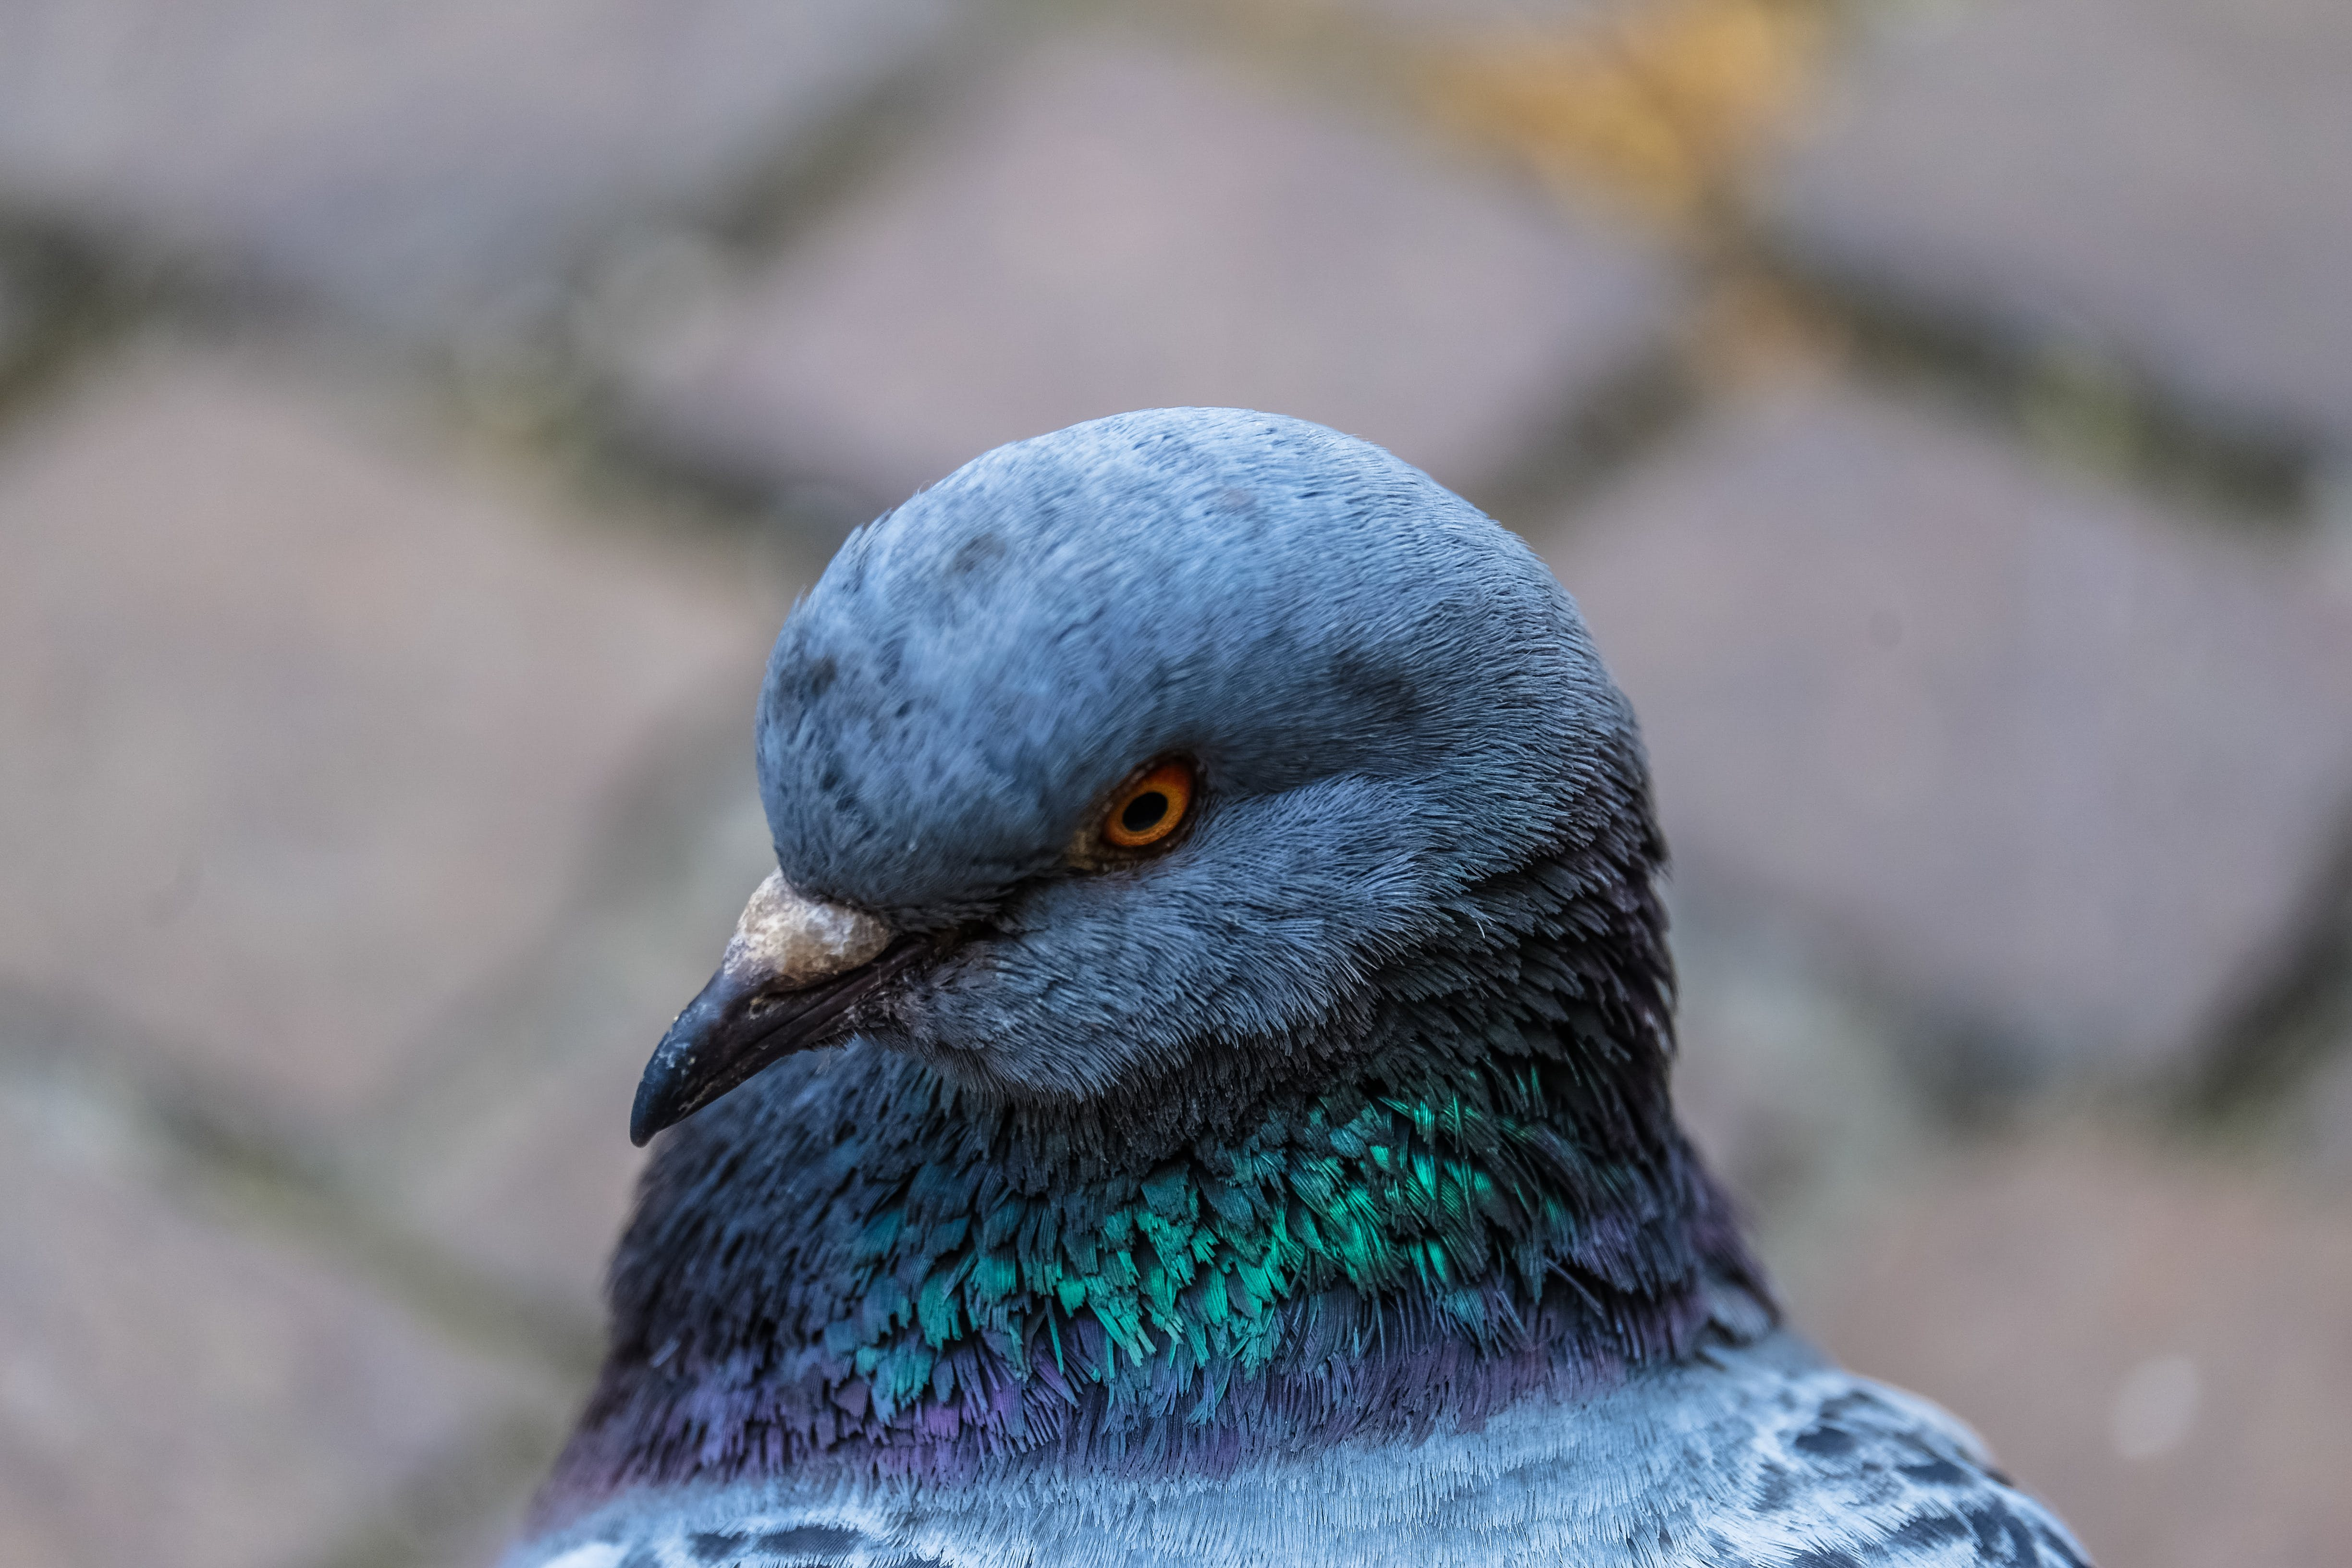 Grey Green Bird Close Up Photo